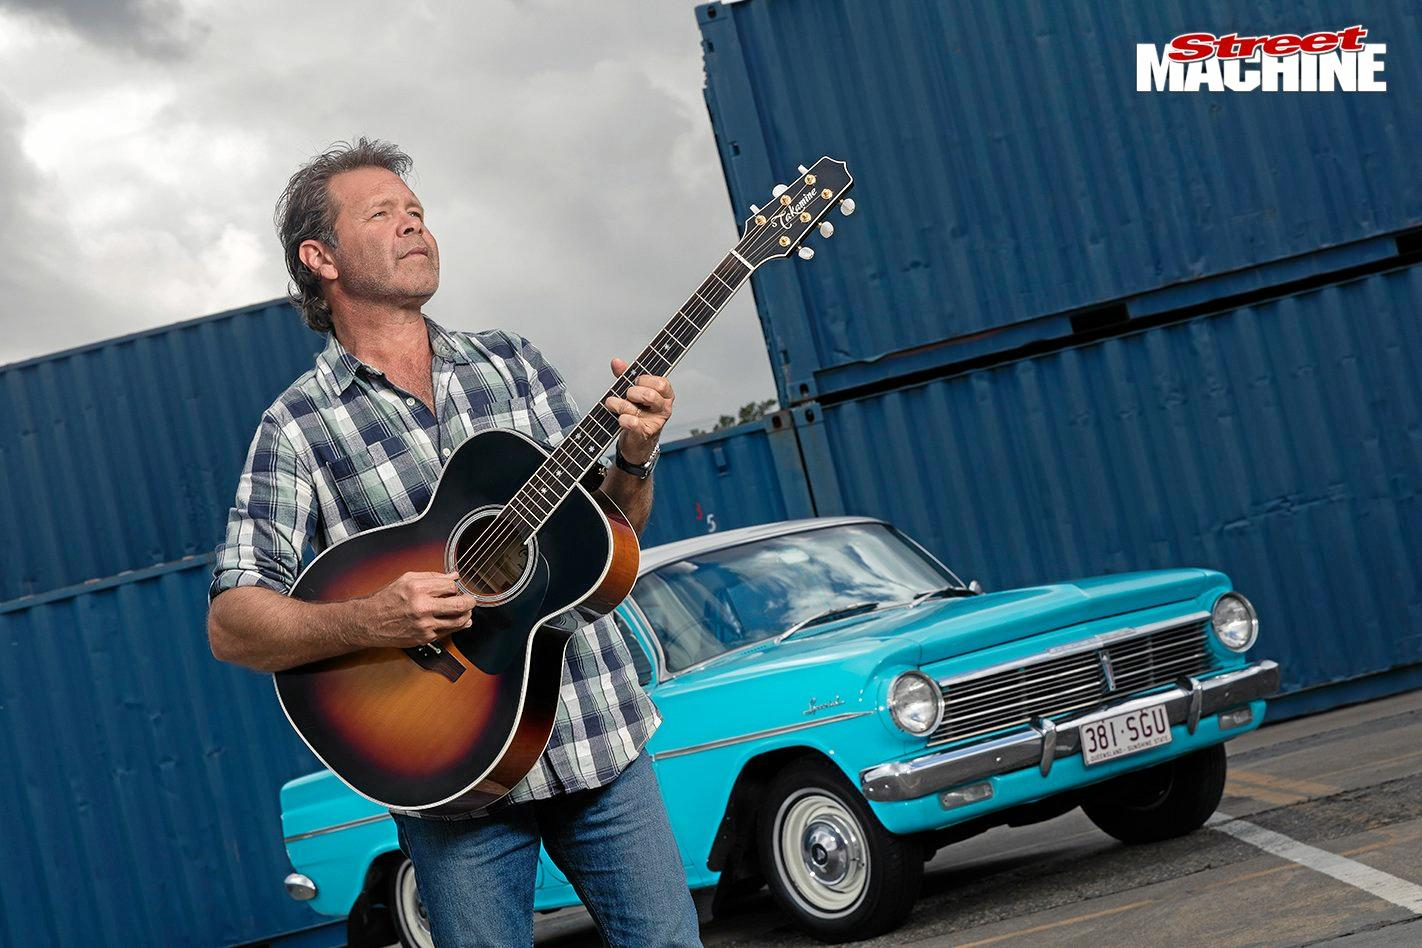 Troy Cassar-Daley wrote the song 'Shutting Down Our Town' for Barnes after reading his memoir Working Class Man. Cassar-Daley is pictured with his pride and joy his classic EH Holden.